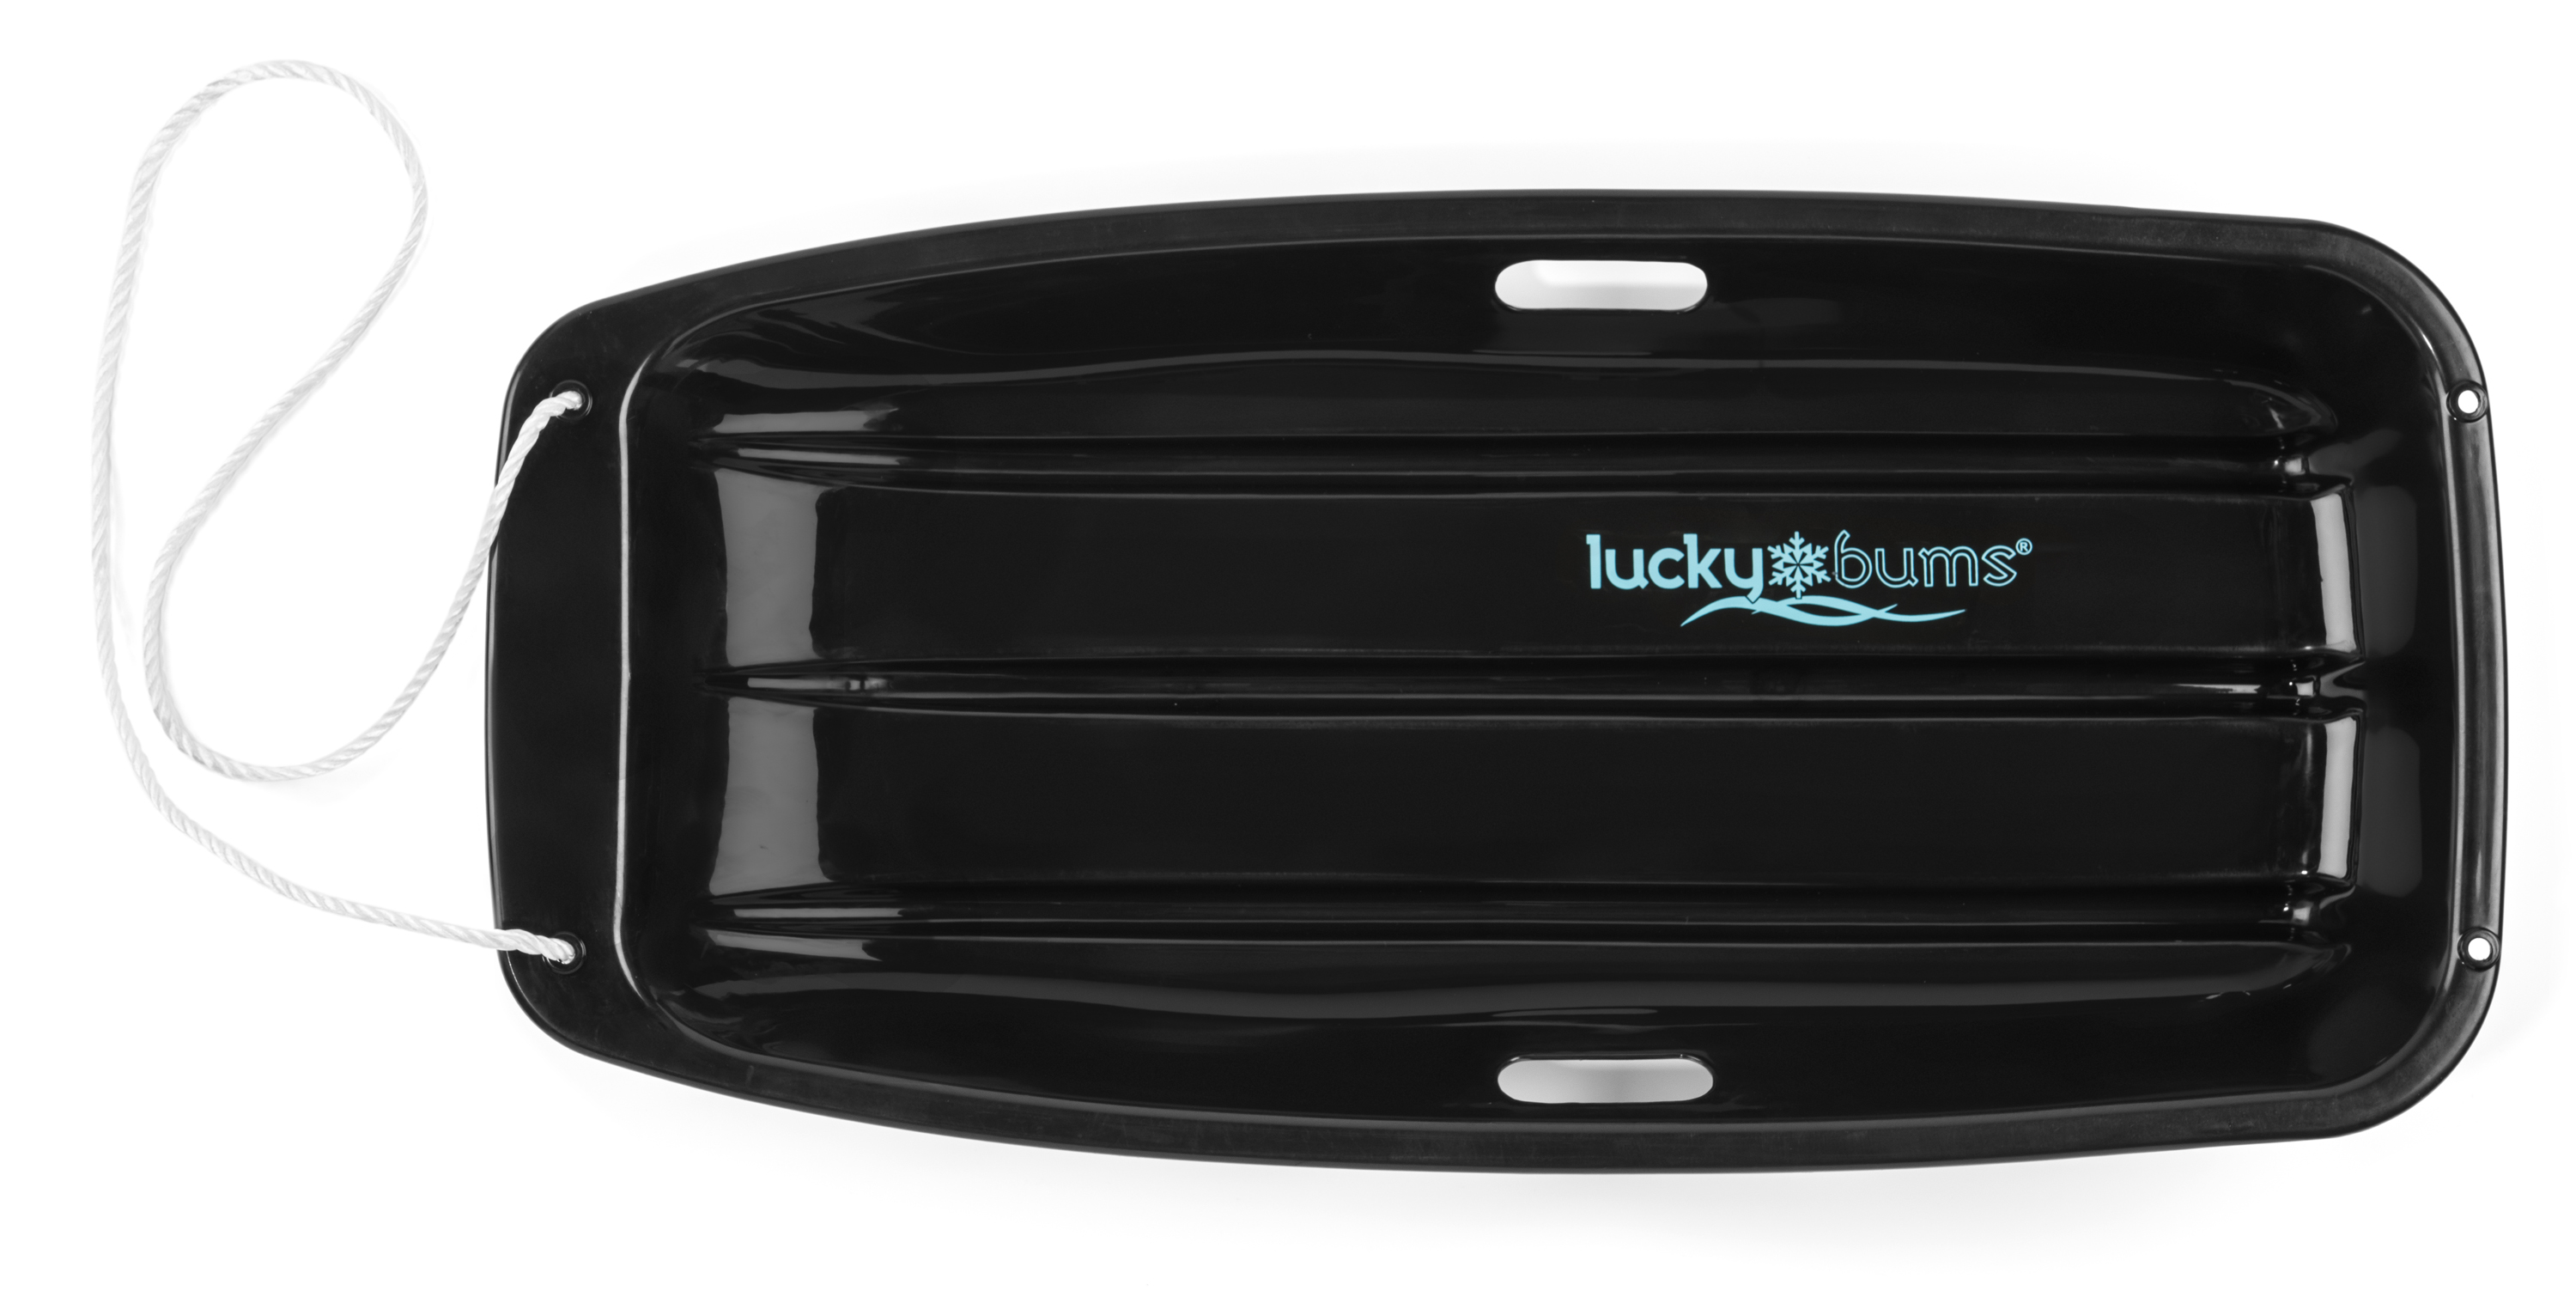 Lucky Bums Snow Kids Boys Girls Toboggan Sled, Black, 33-inch by Lucky Bums